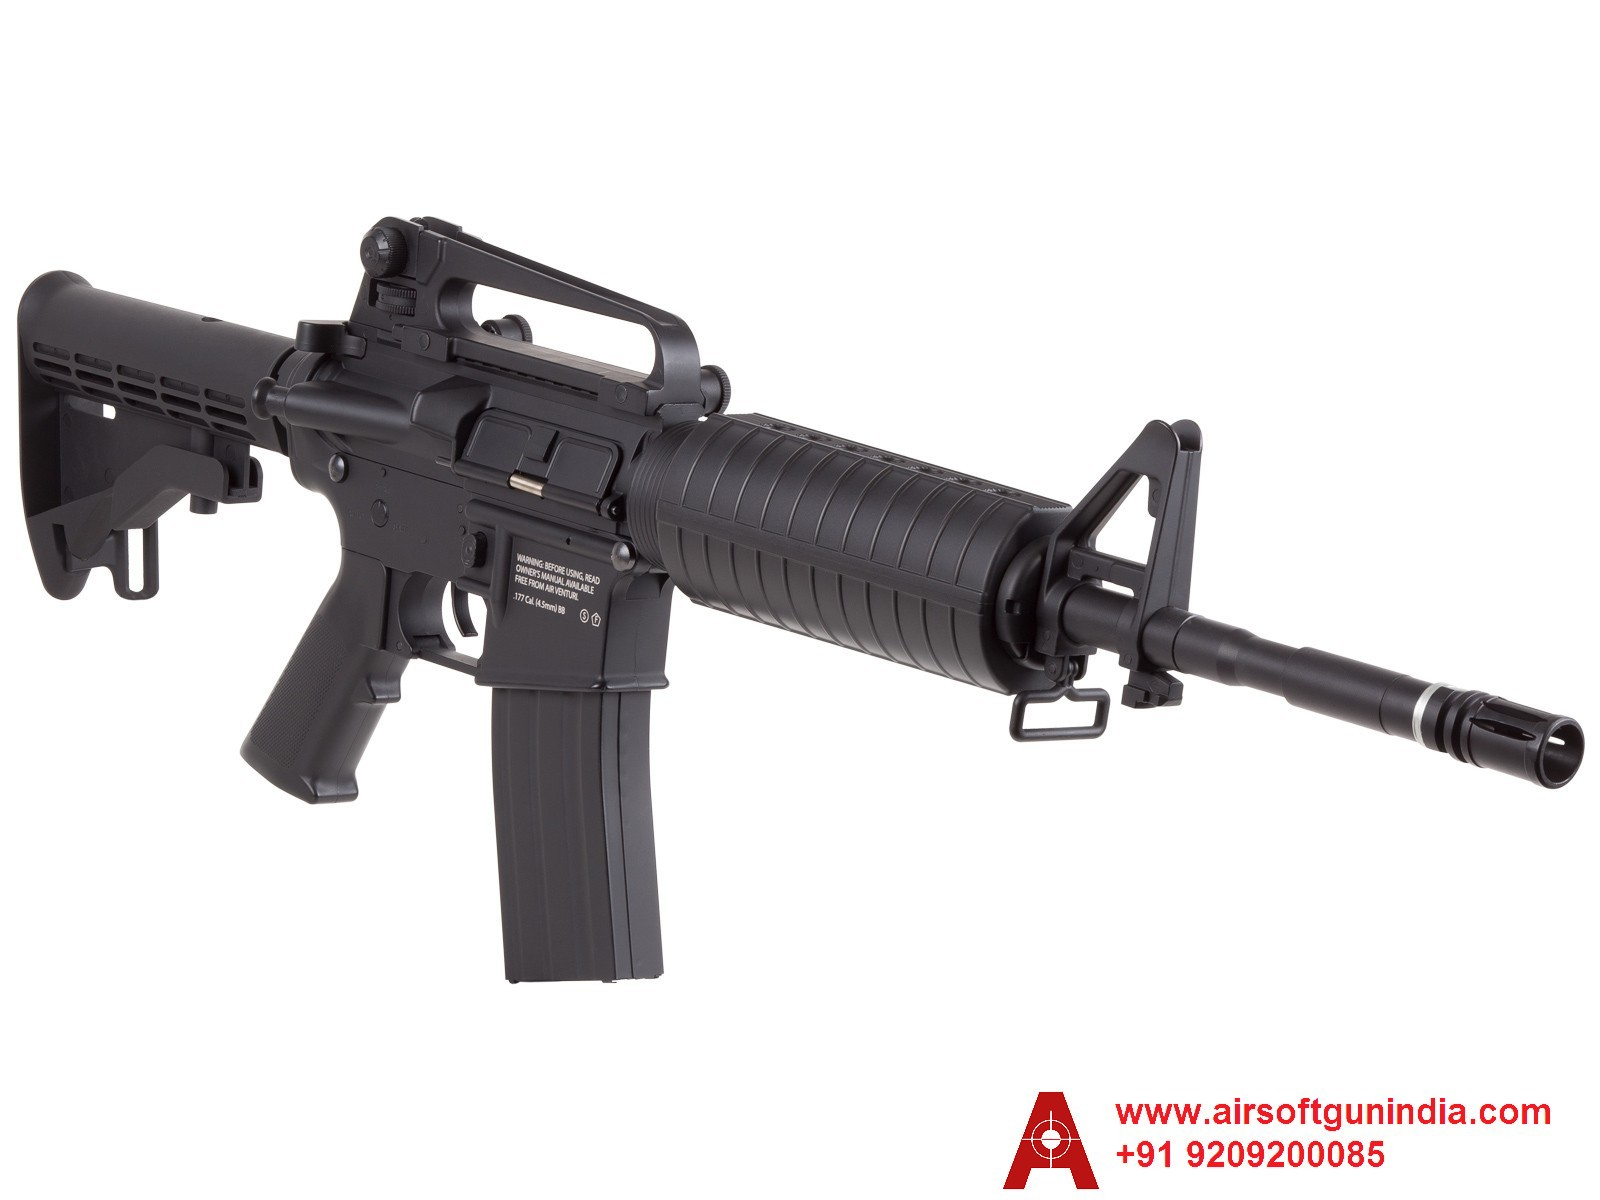 HellBoy M4  .177 CO2 BB Tactical Air Rifle, Black In India By Airsoft Gun India